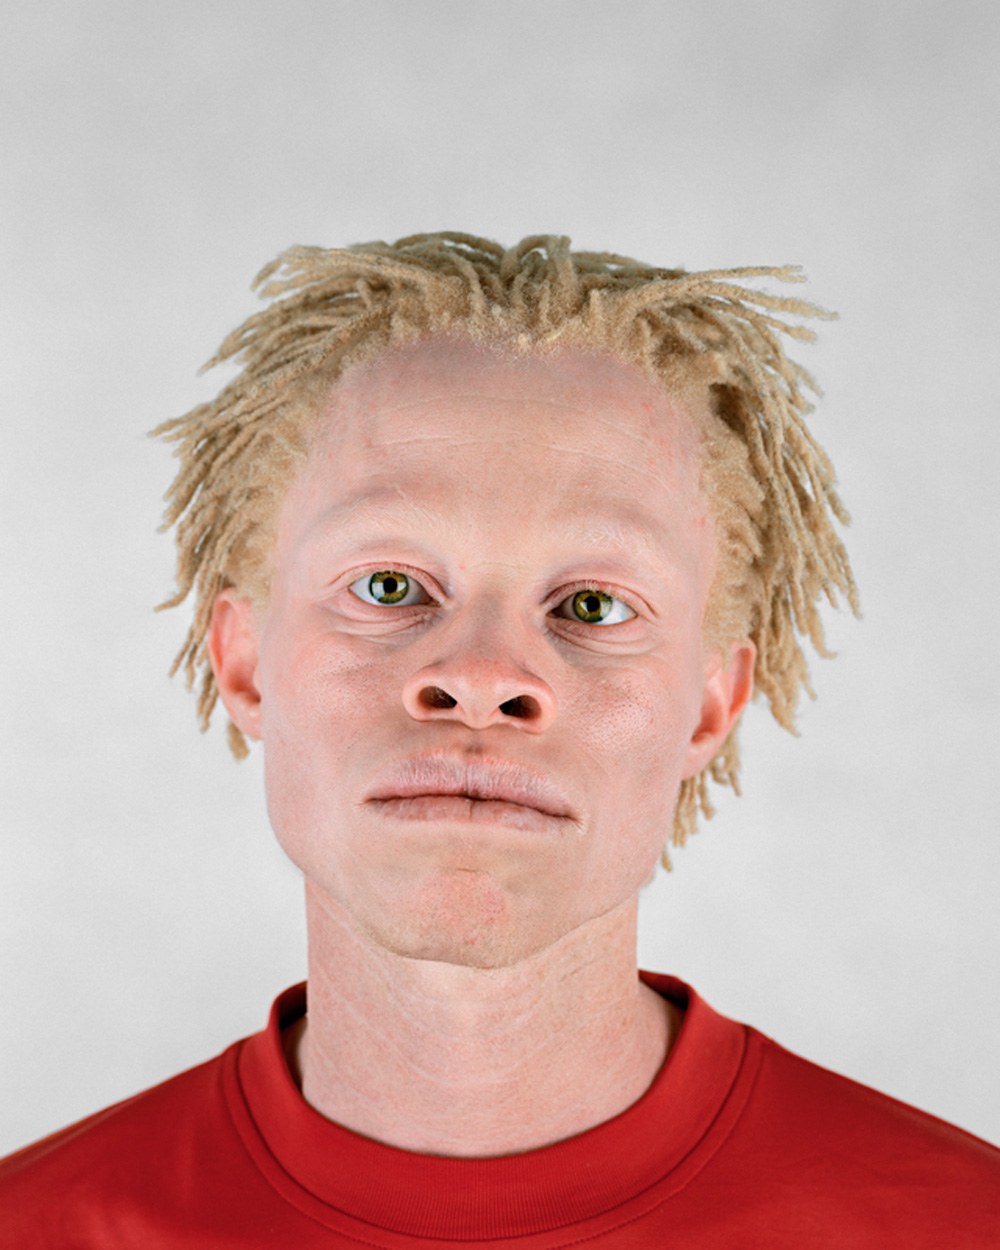 albino black people